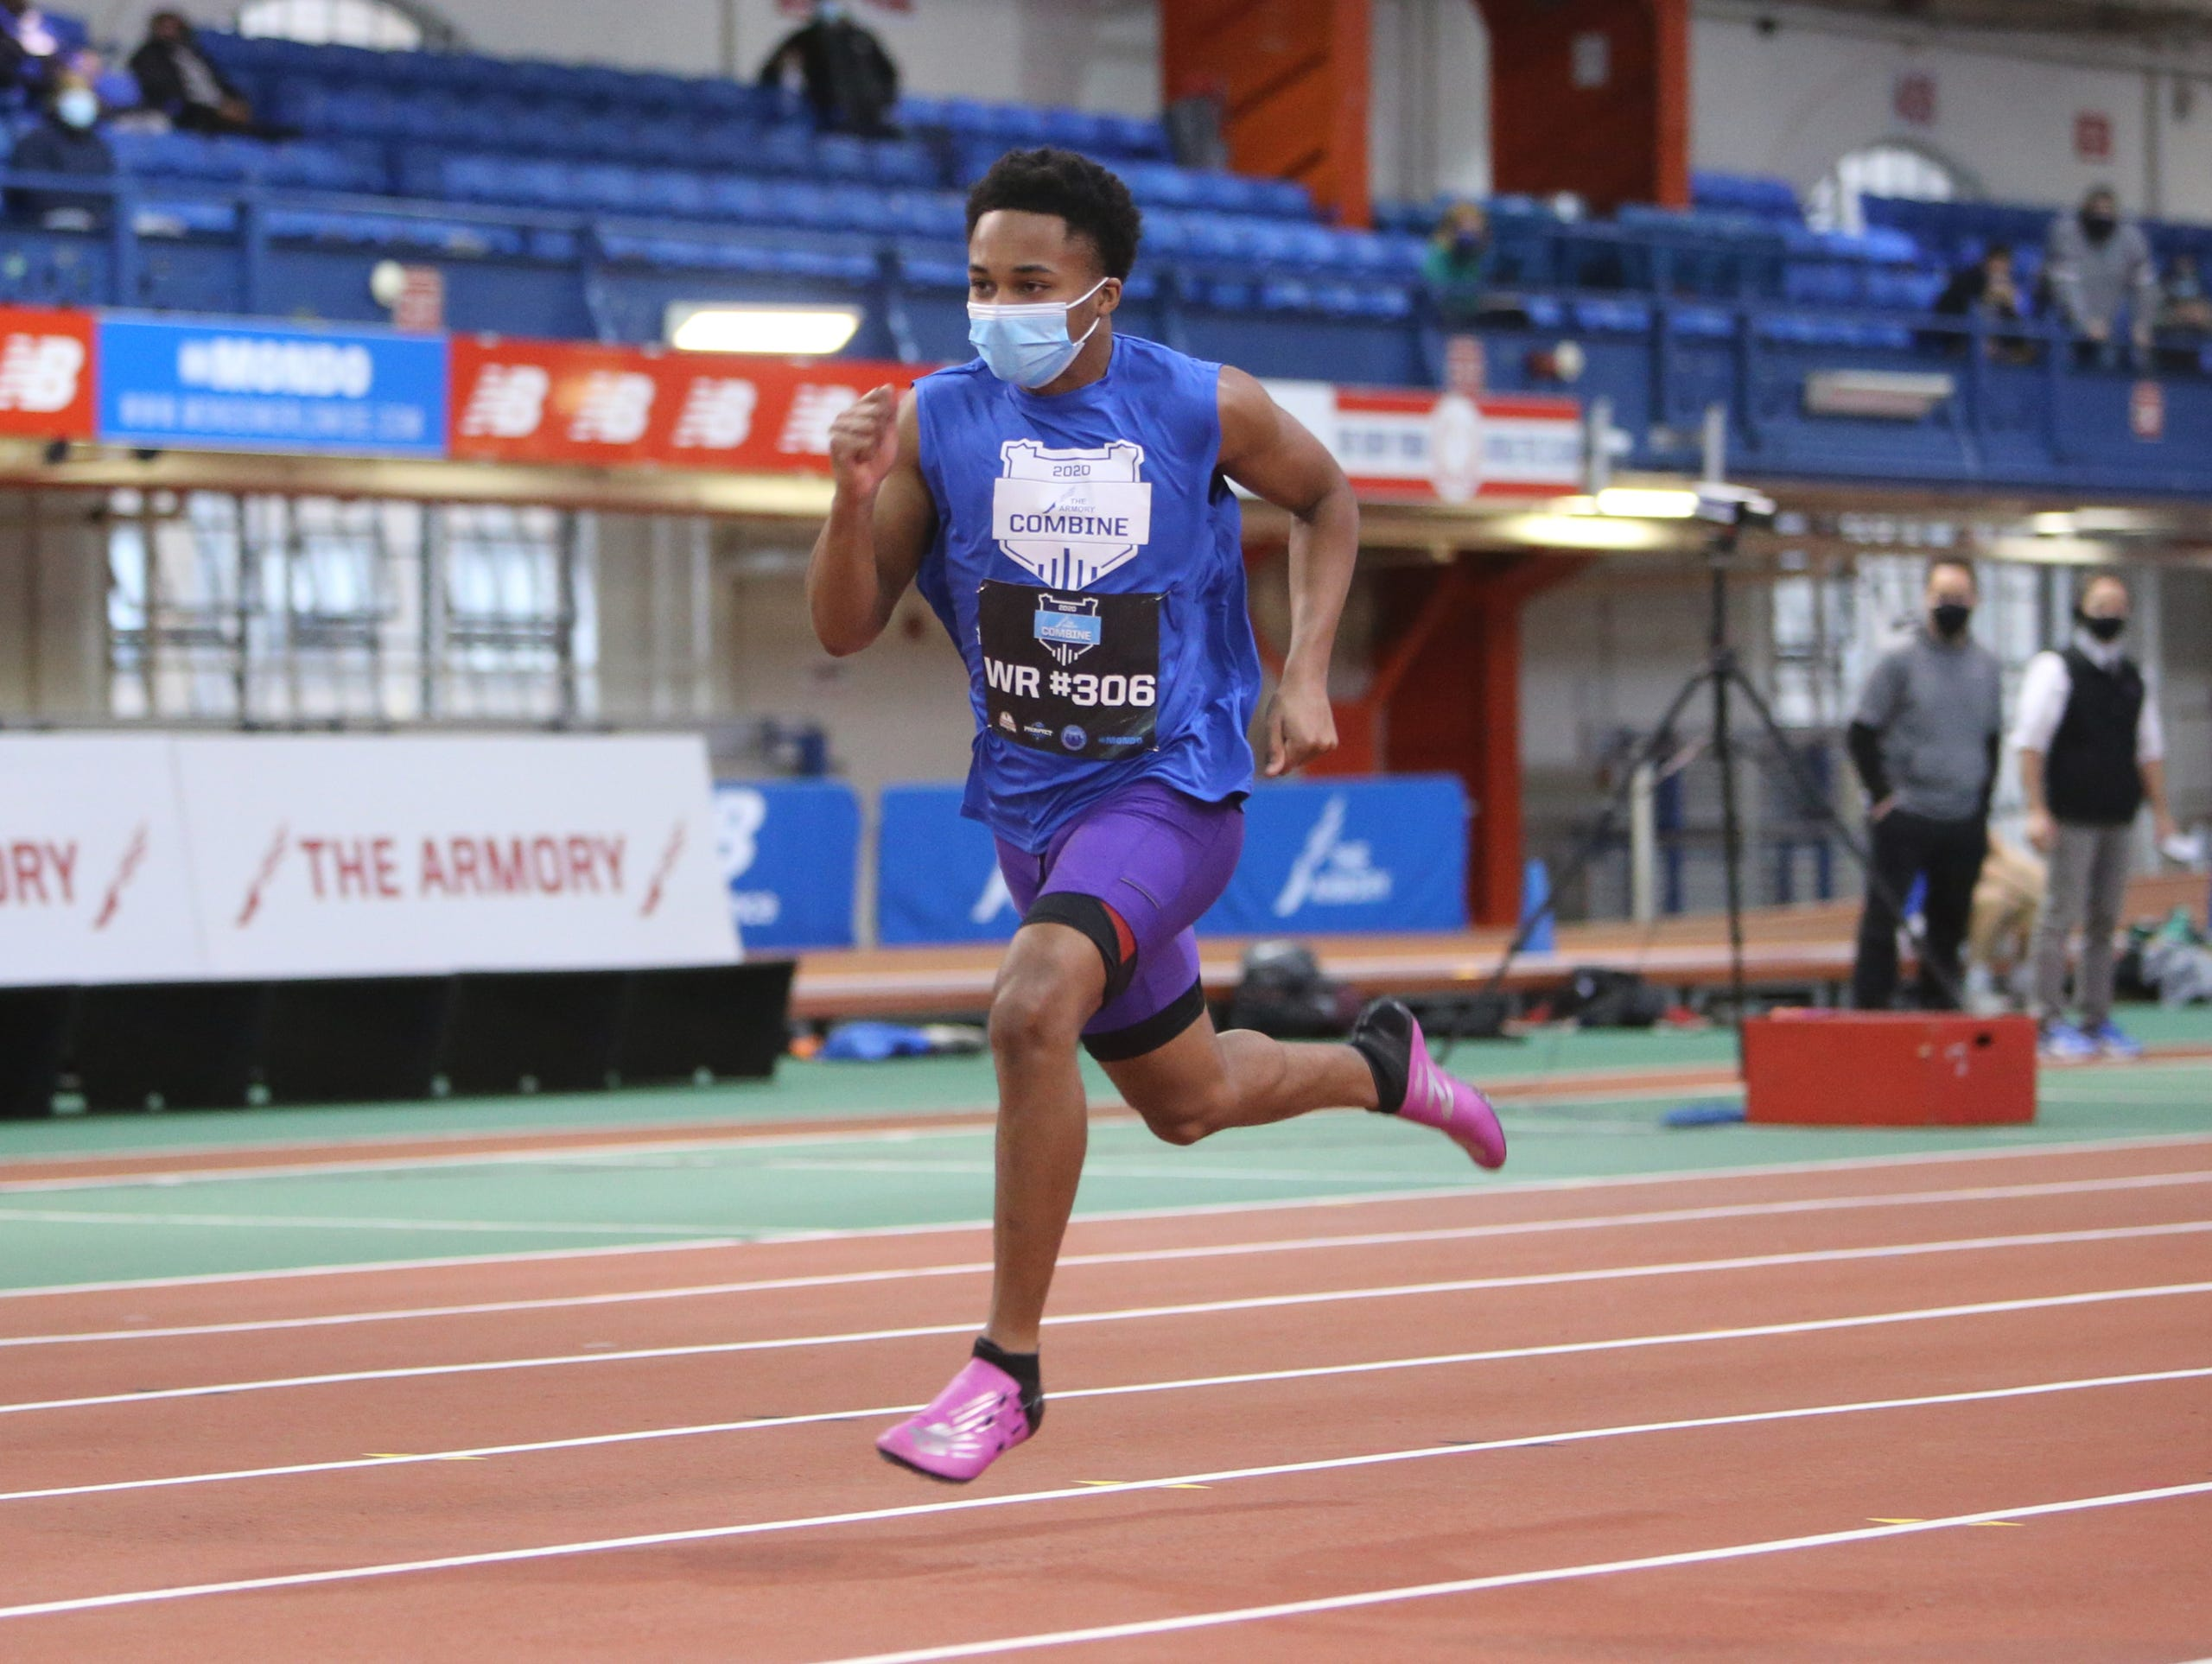 New Rochelle's Gary Phillips III takes part in The Armory Football Combine at The Armory Track & Field Center in New York on Saturday, December 5, 2020.